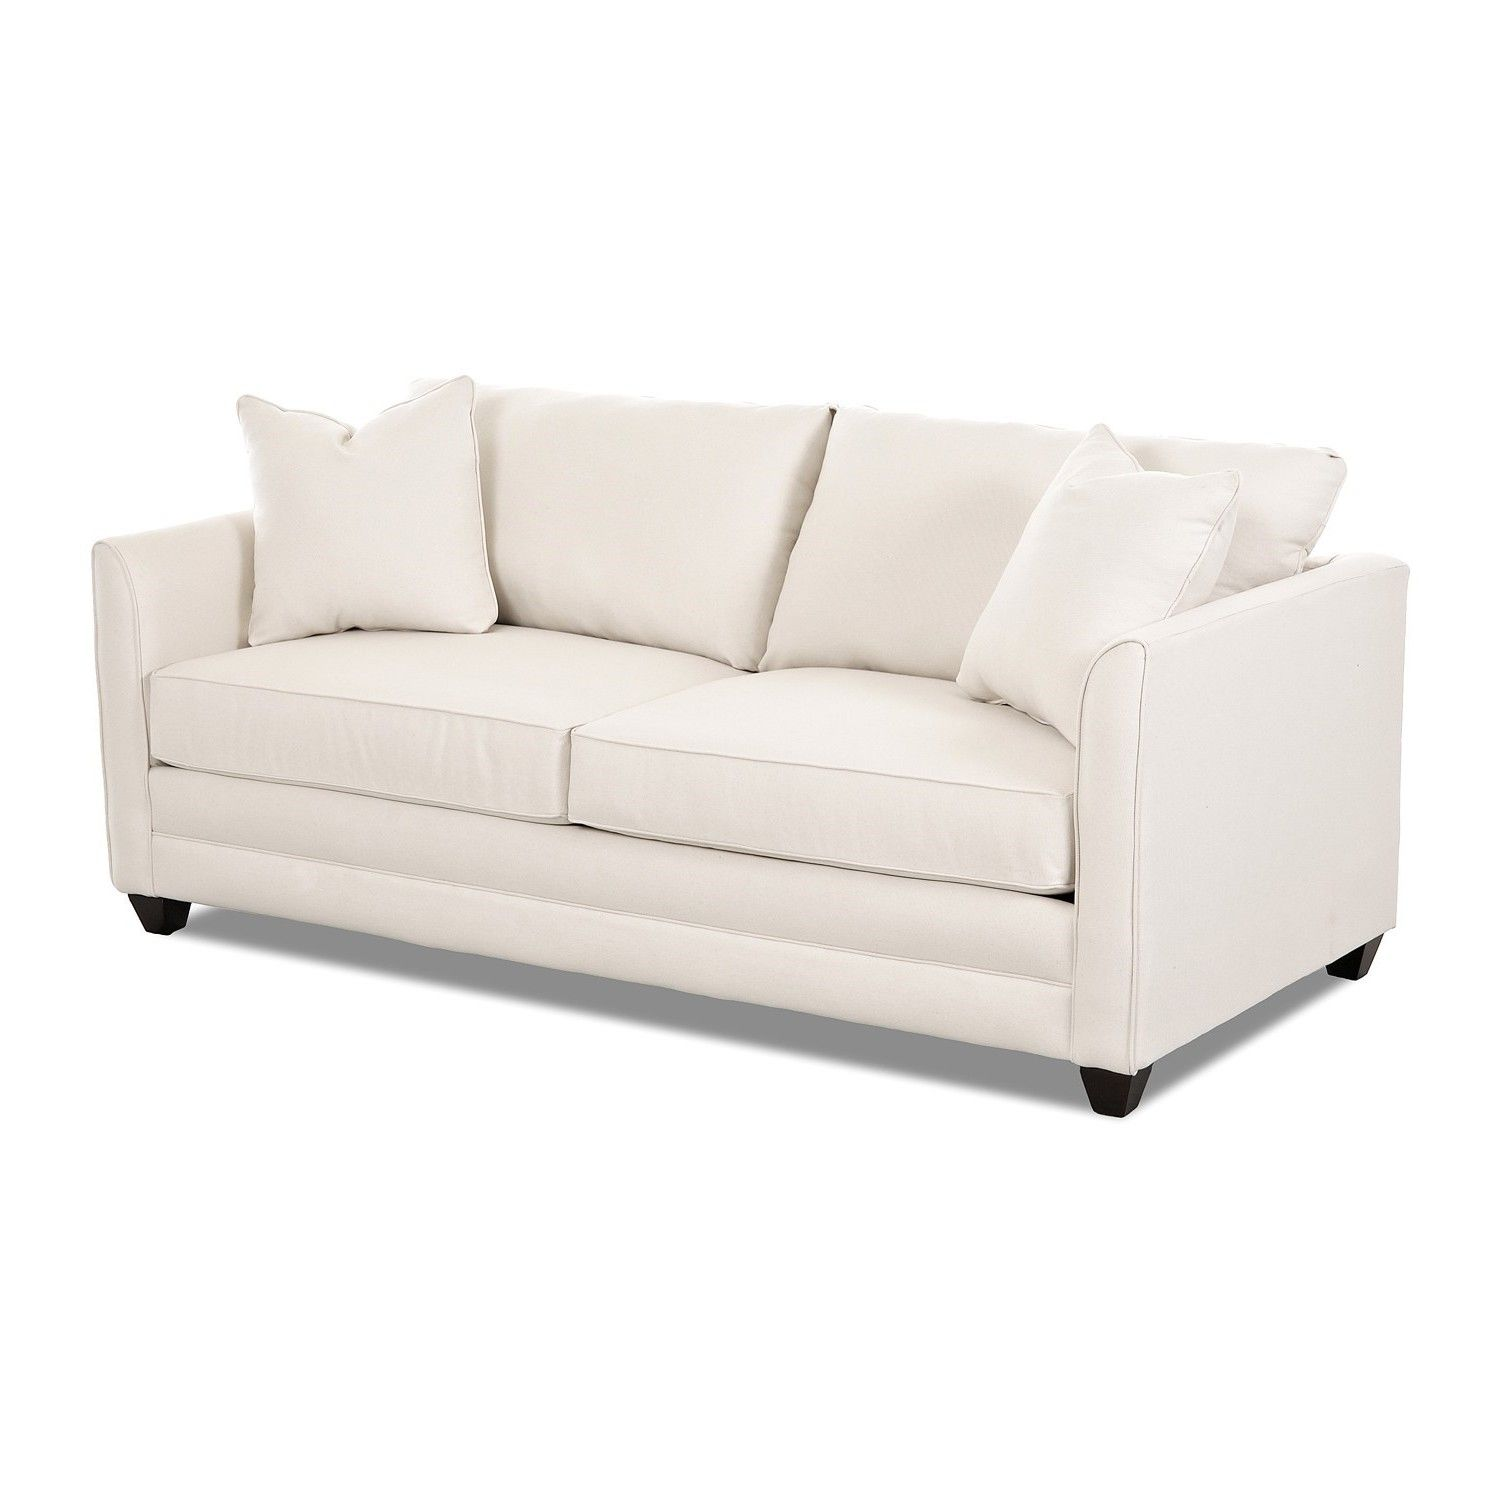 stunning 72 inch sleeper sofa construction-Stylish 72 Inch Sleeper sofa Layout